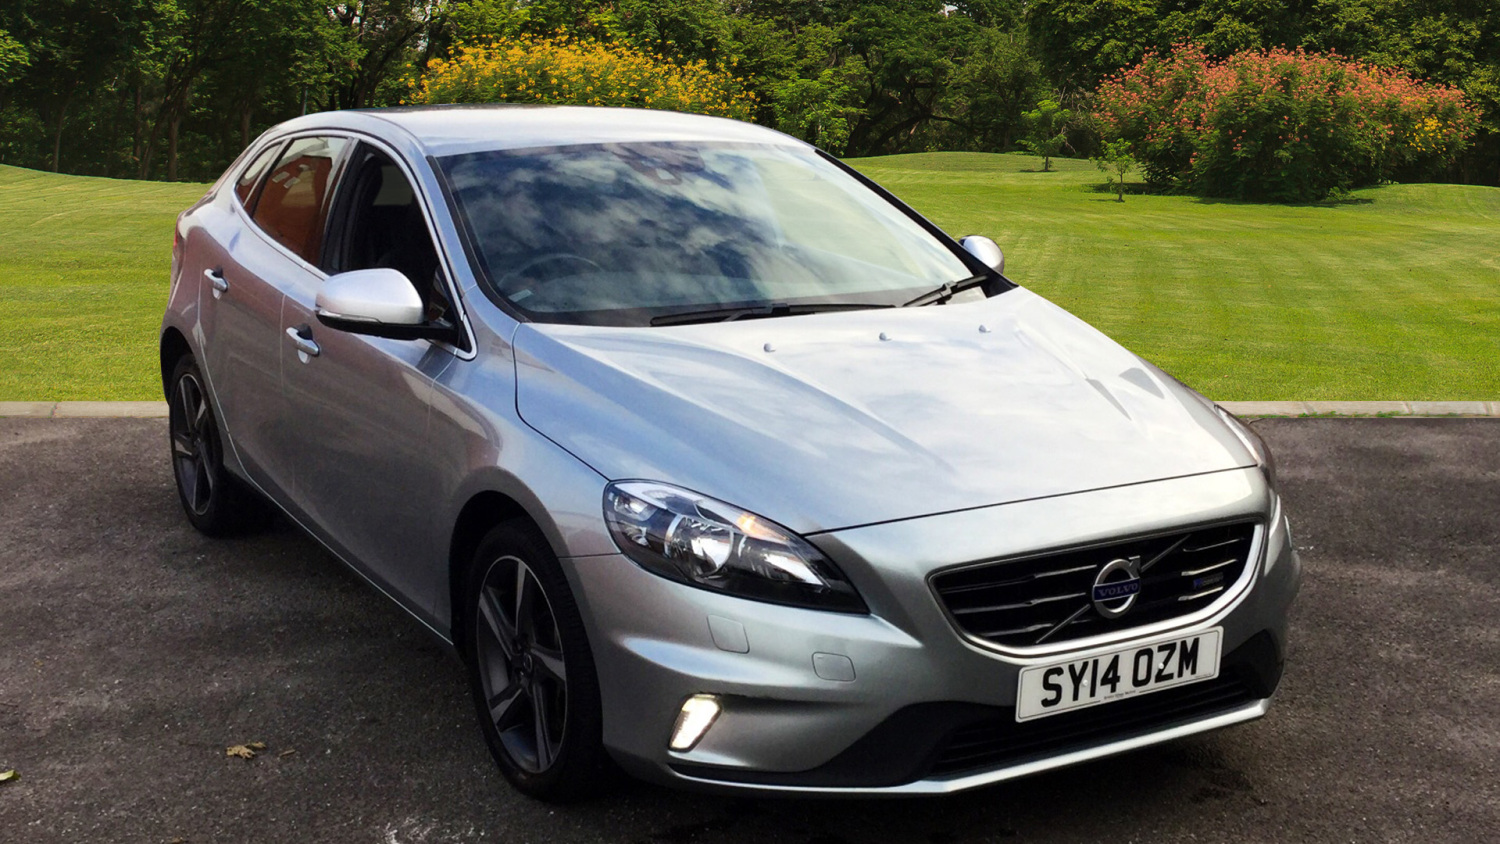 used volvo v40 d3 r design 5dr diesel hatchback for sale. Black Bedroom Furniture Sets. Home Design Ideas